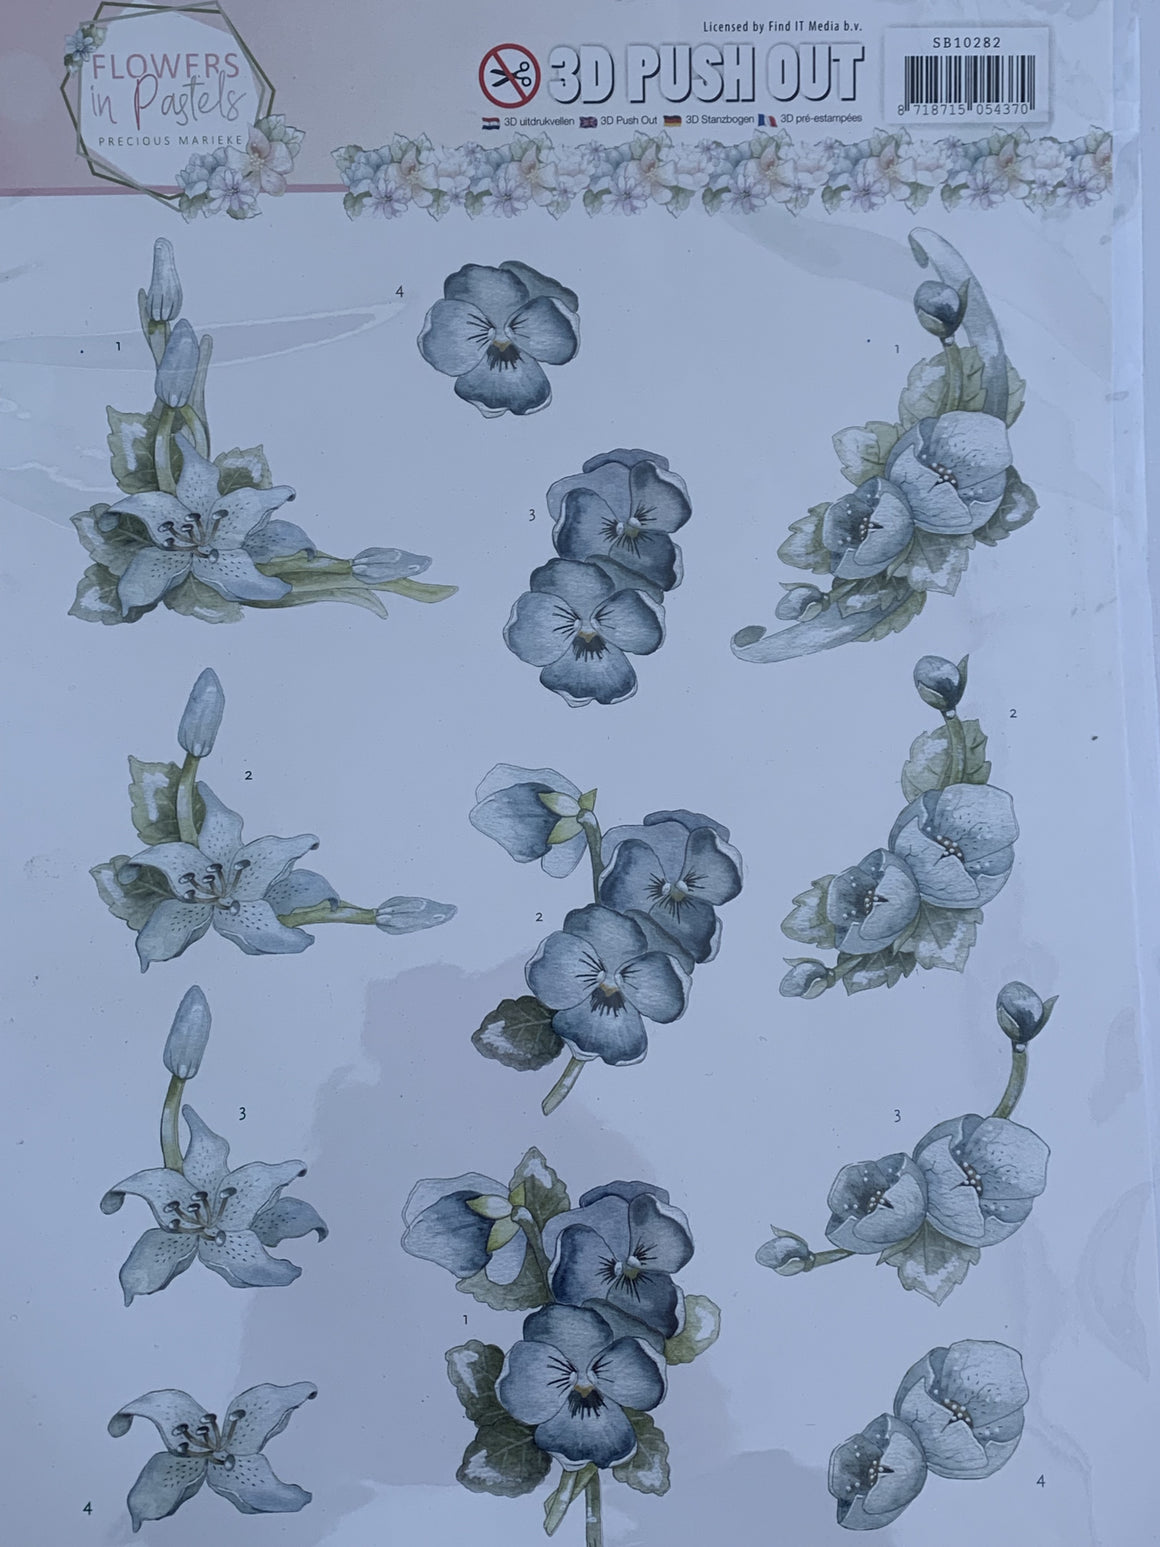 Pastels in Flowers 3D Push Outs by Precious Marieke - NZ Gift Hutt